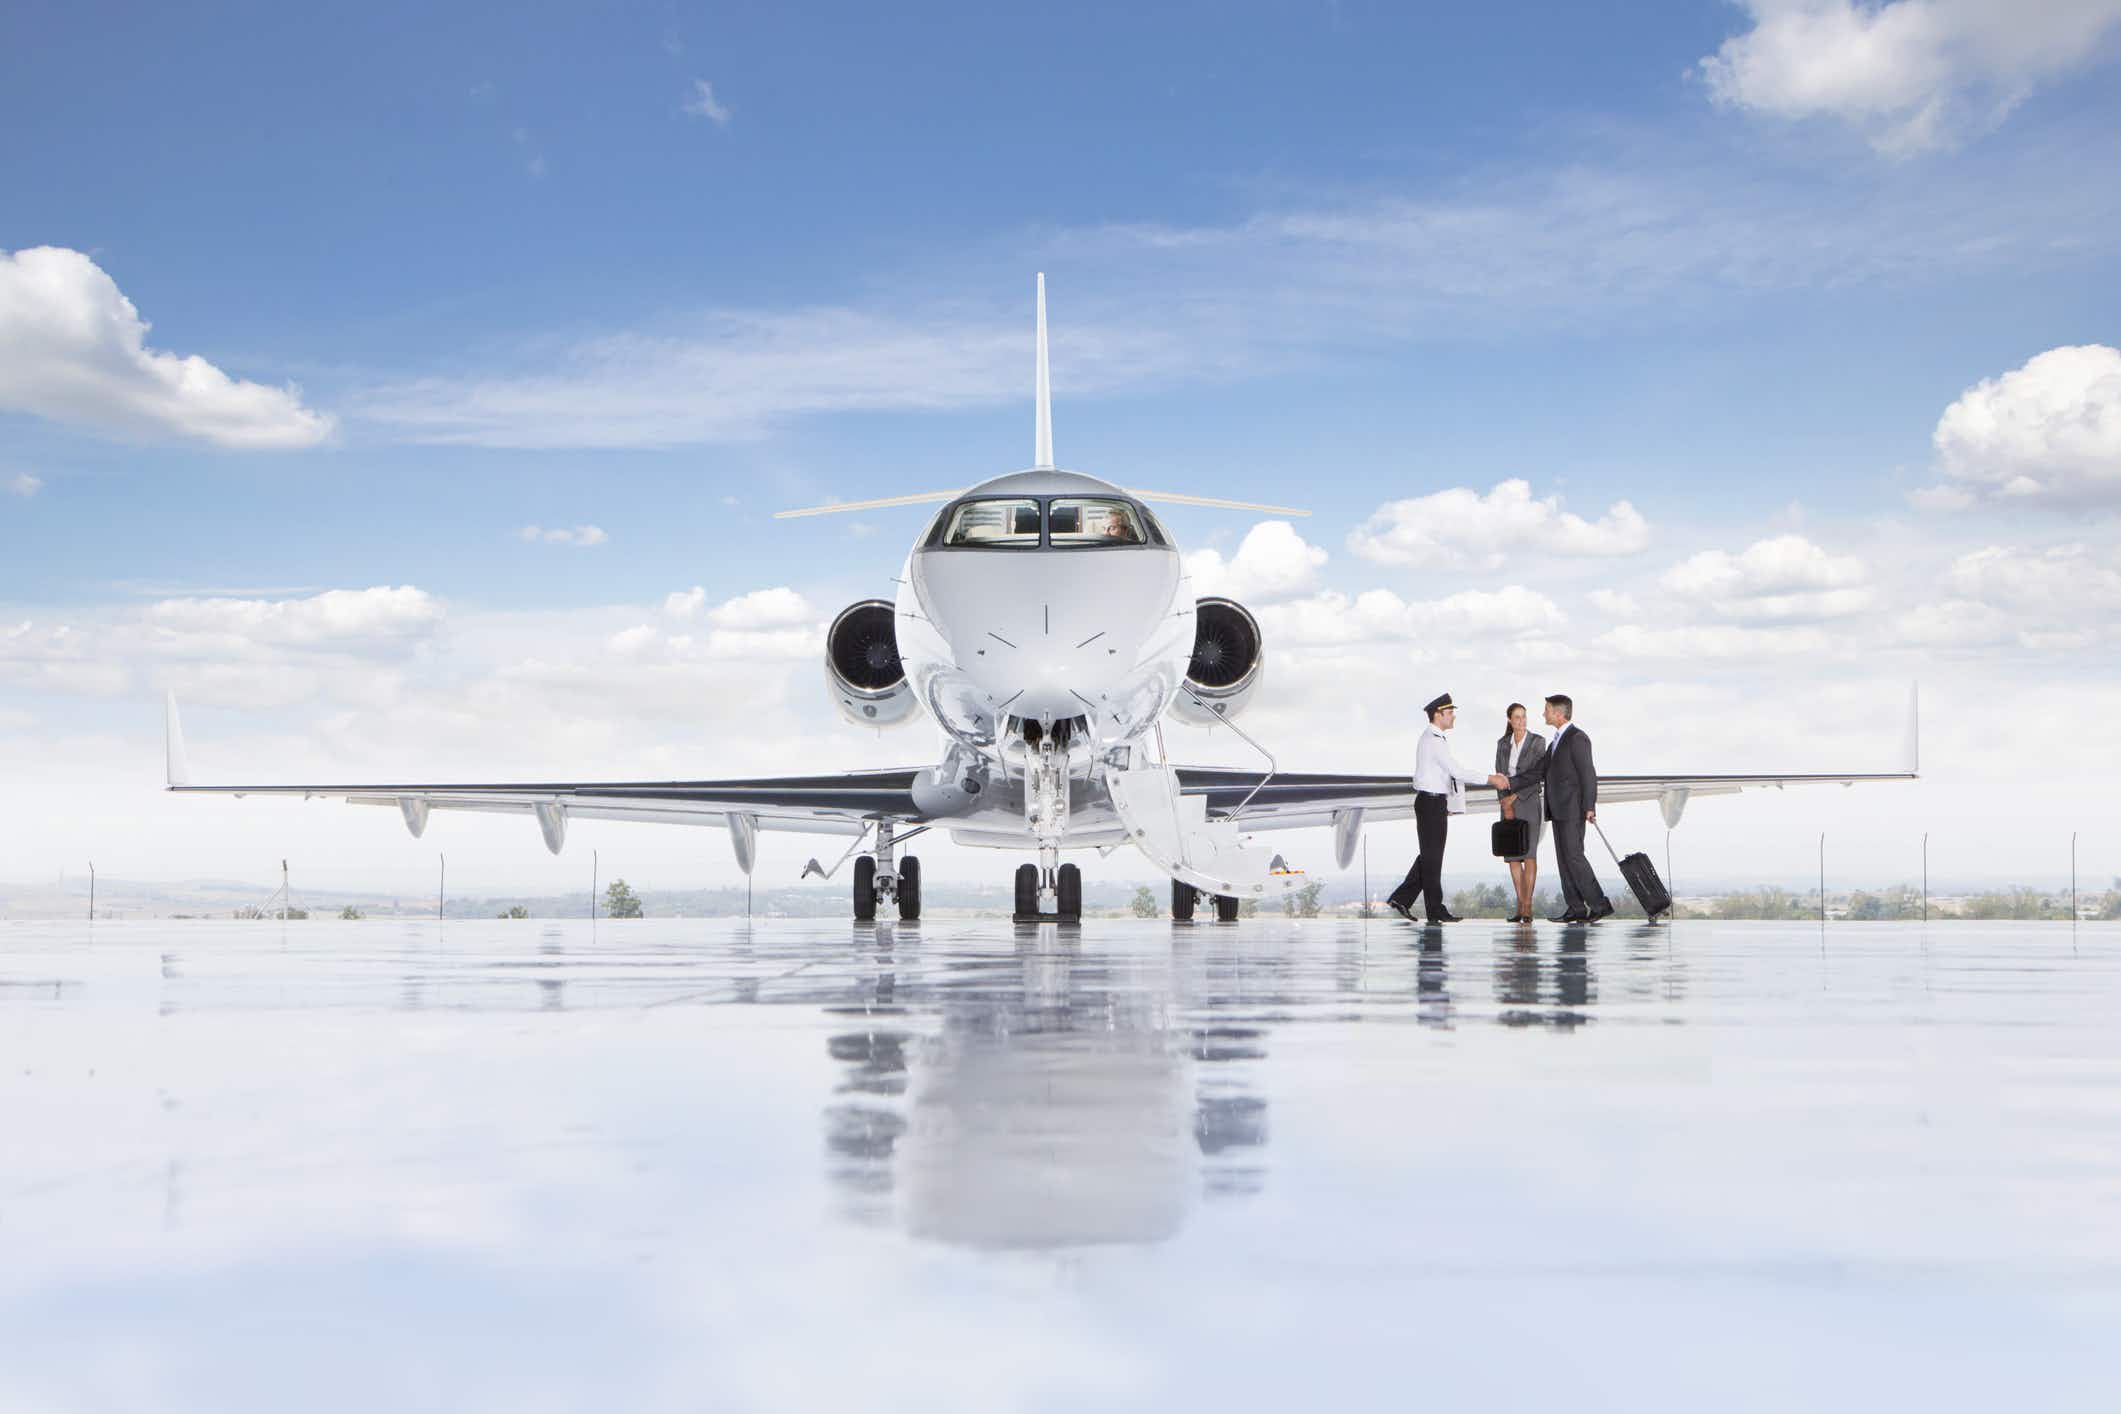 Fancy flying somewhere in a private plane for just a share of the costs? This app can arrange it